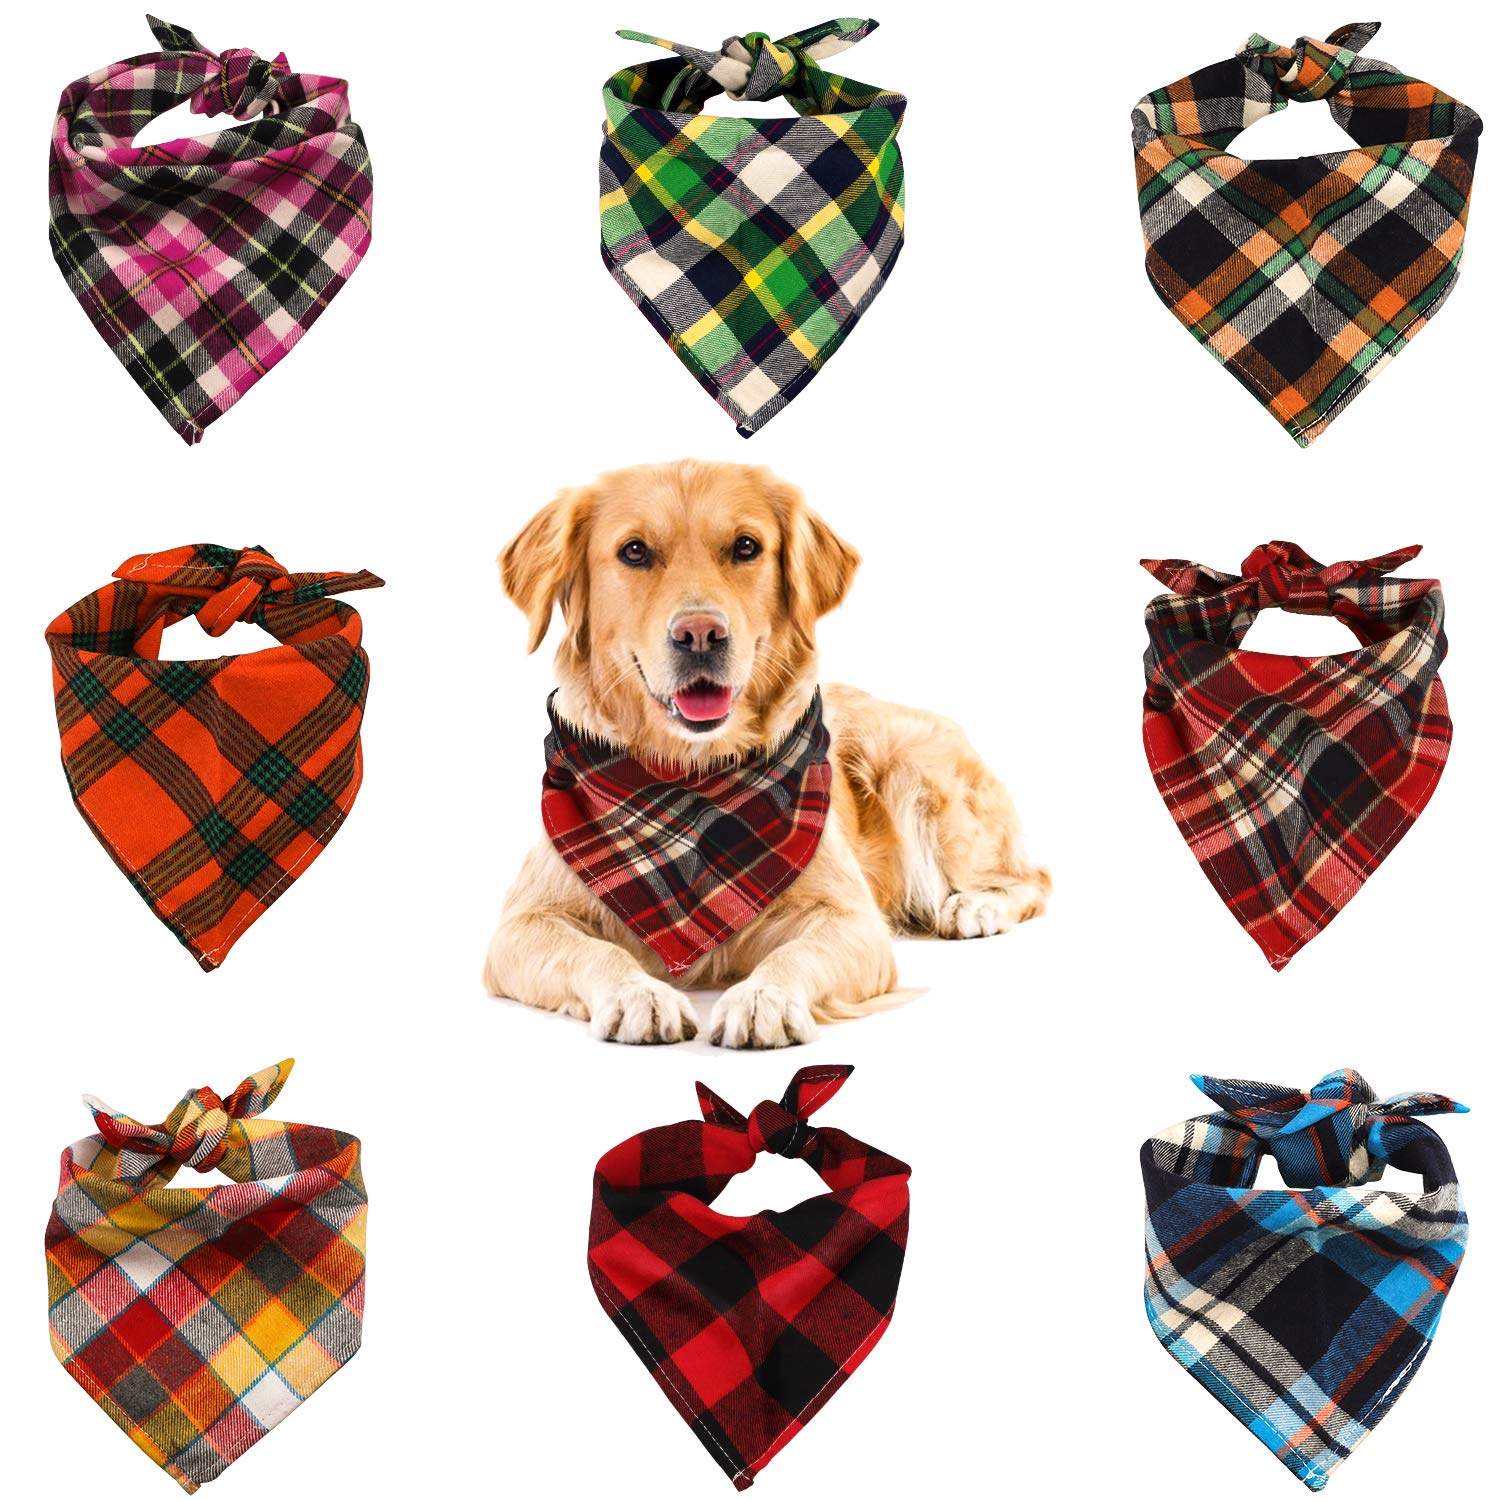 VIPITH 8 Pack Triangle Dog Bandana, Reversible Plaid Painting Bibs Scarf, Washable and Adjustable Kerchief Set for Dogs…